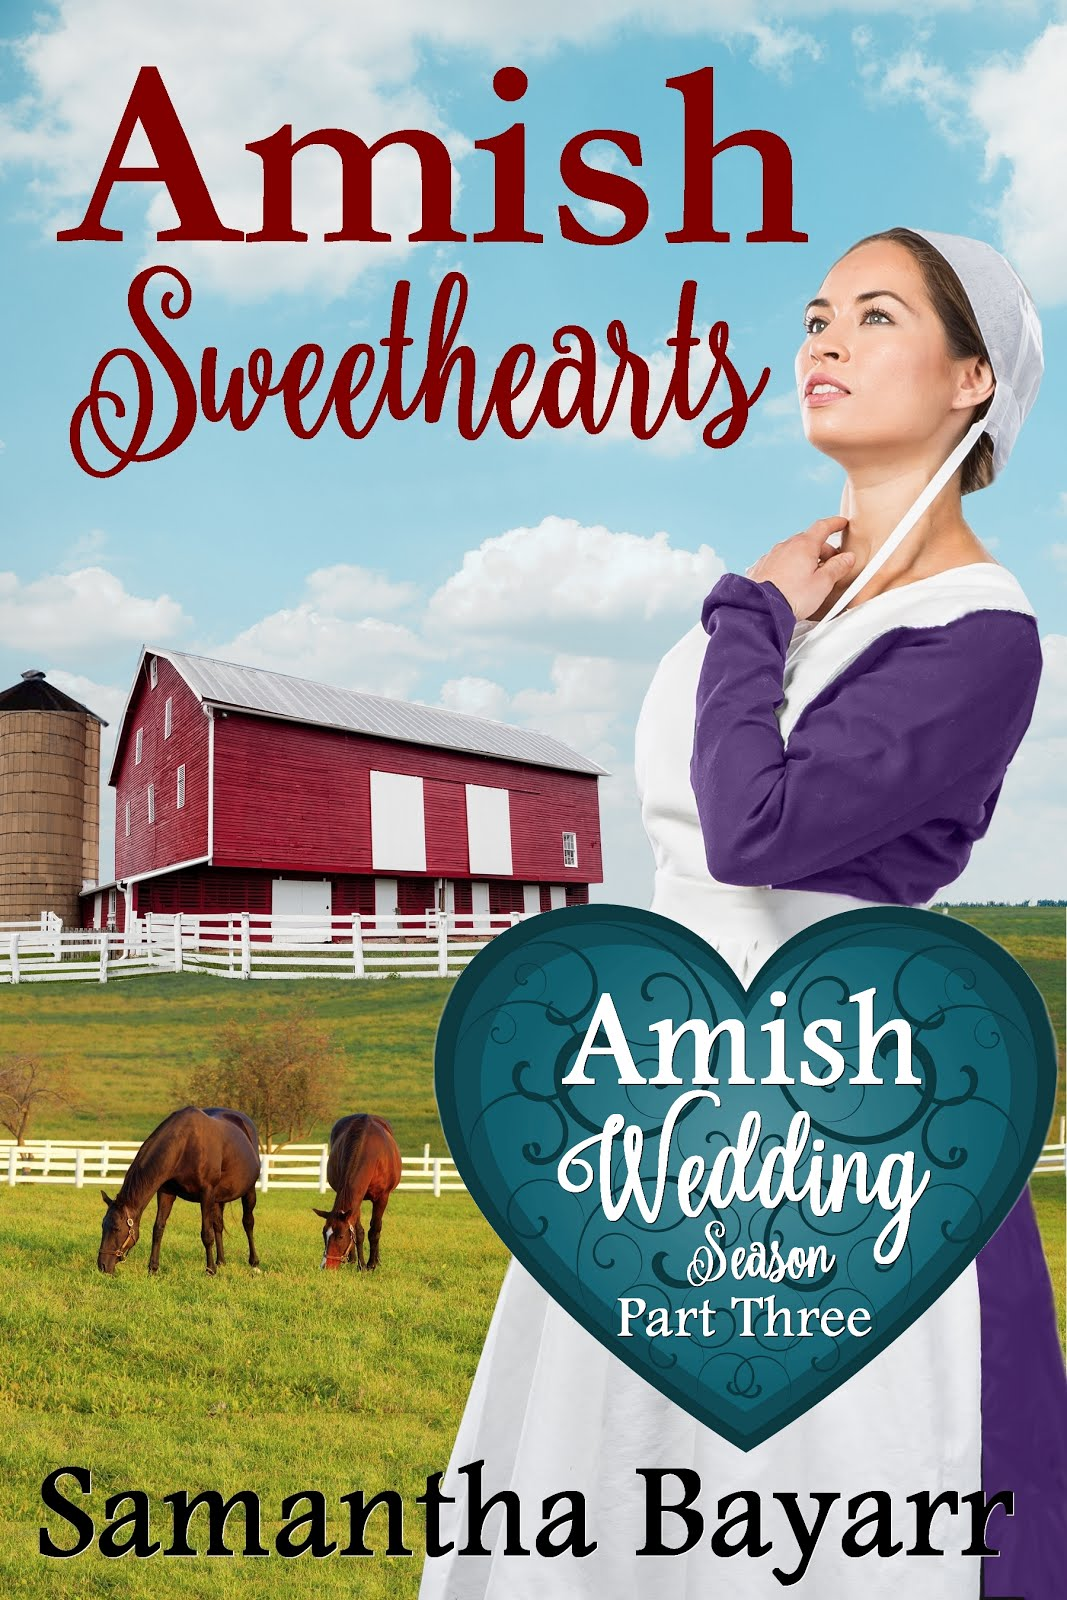 Amish Wedding Season